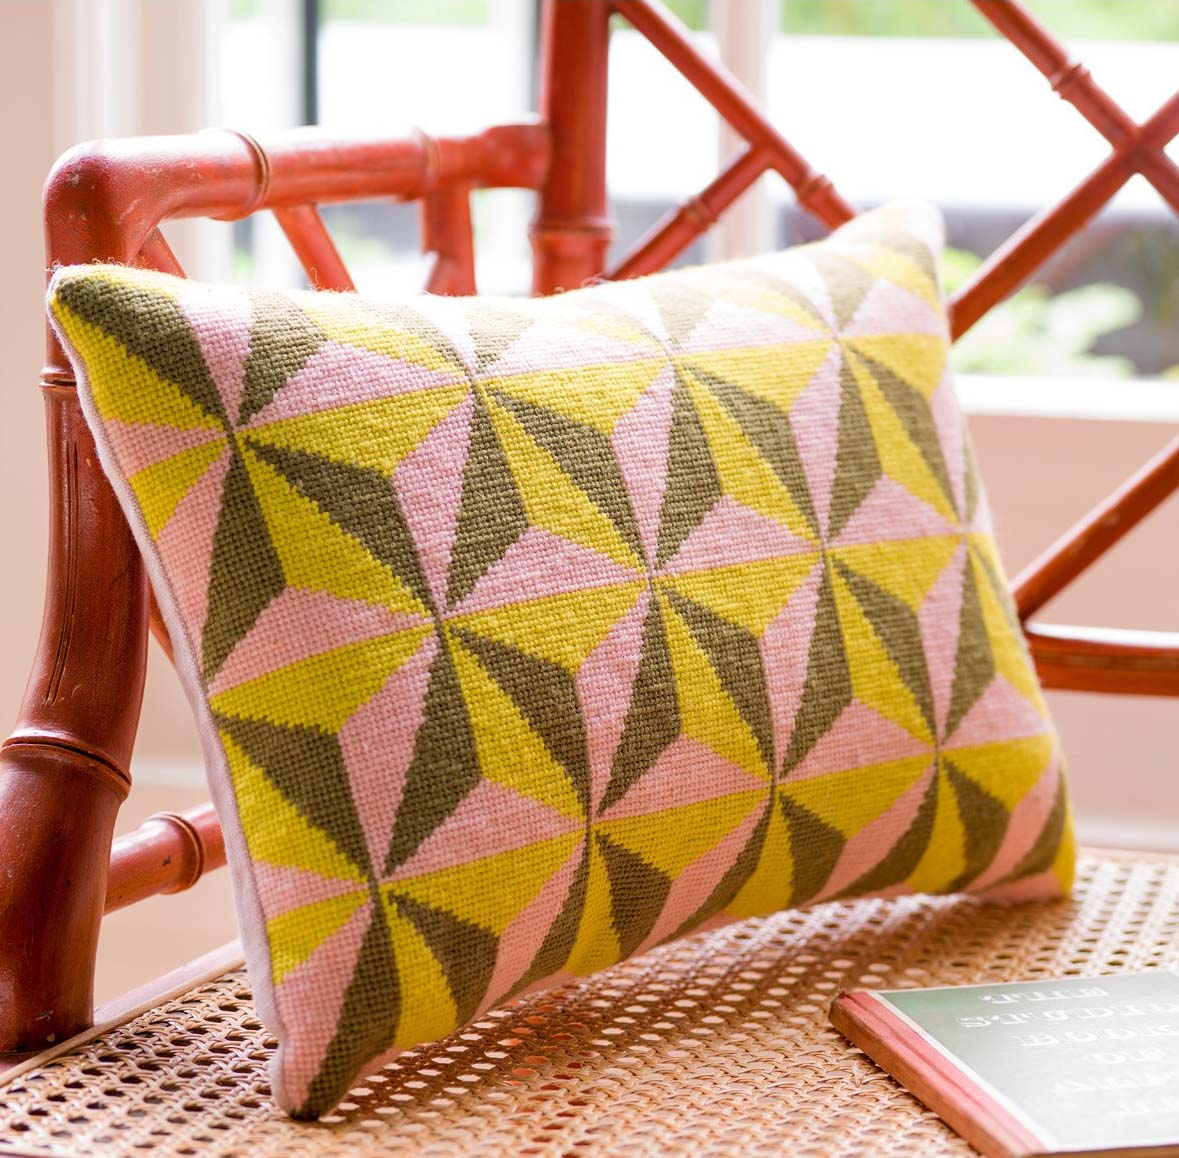 The Tetrahedron Cushion for Pentreath & Hall